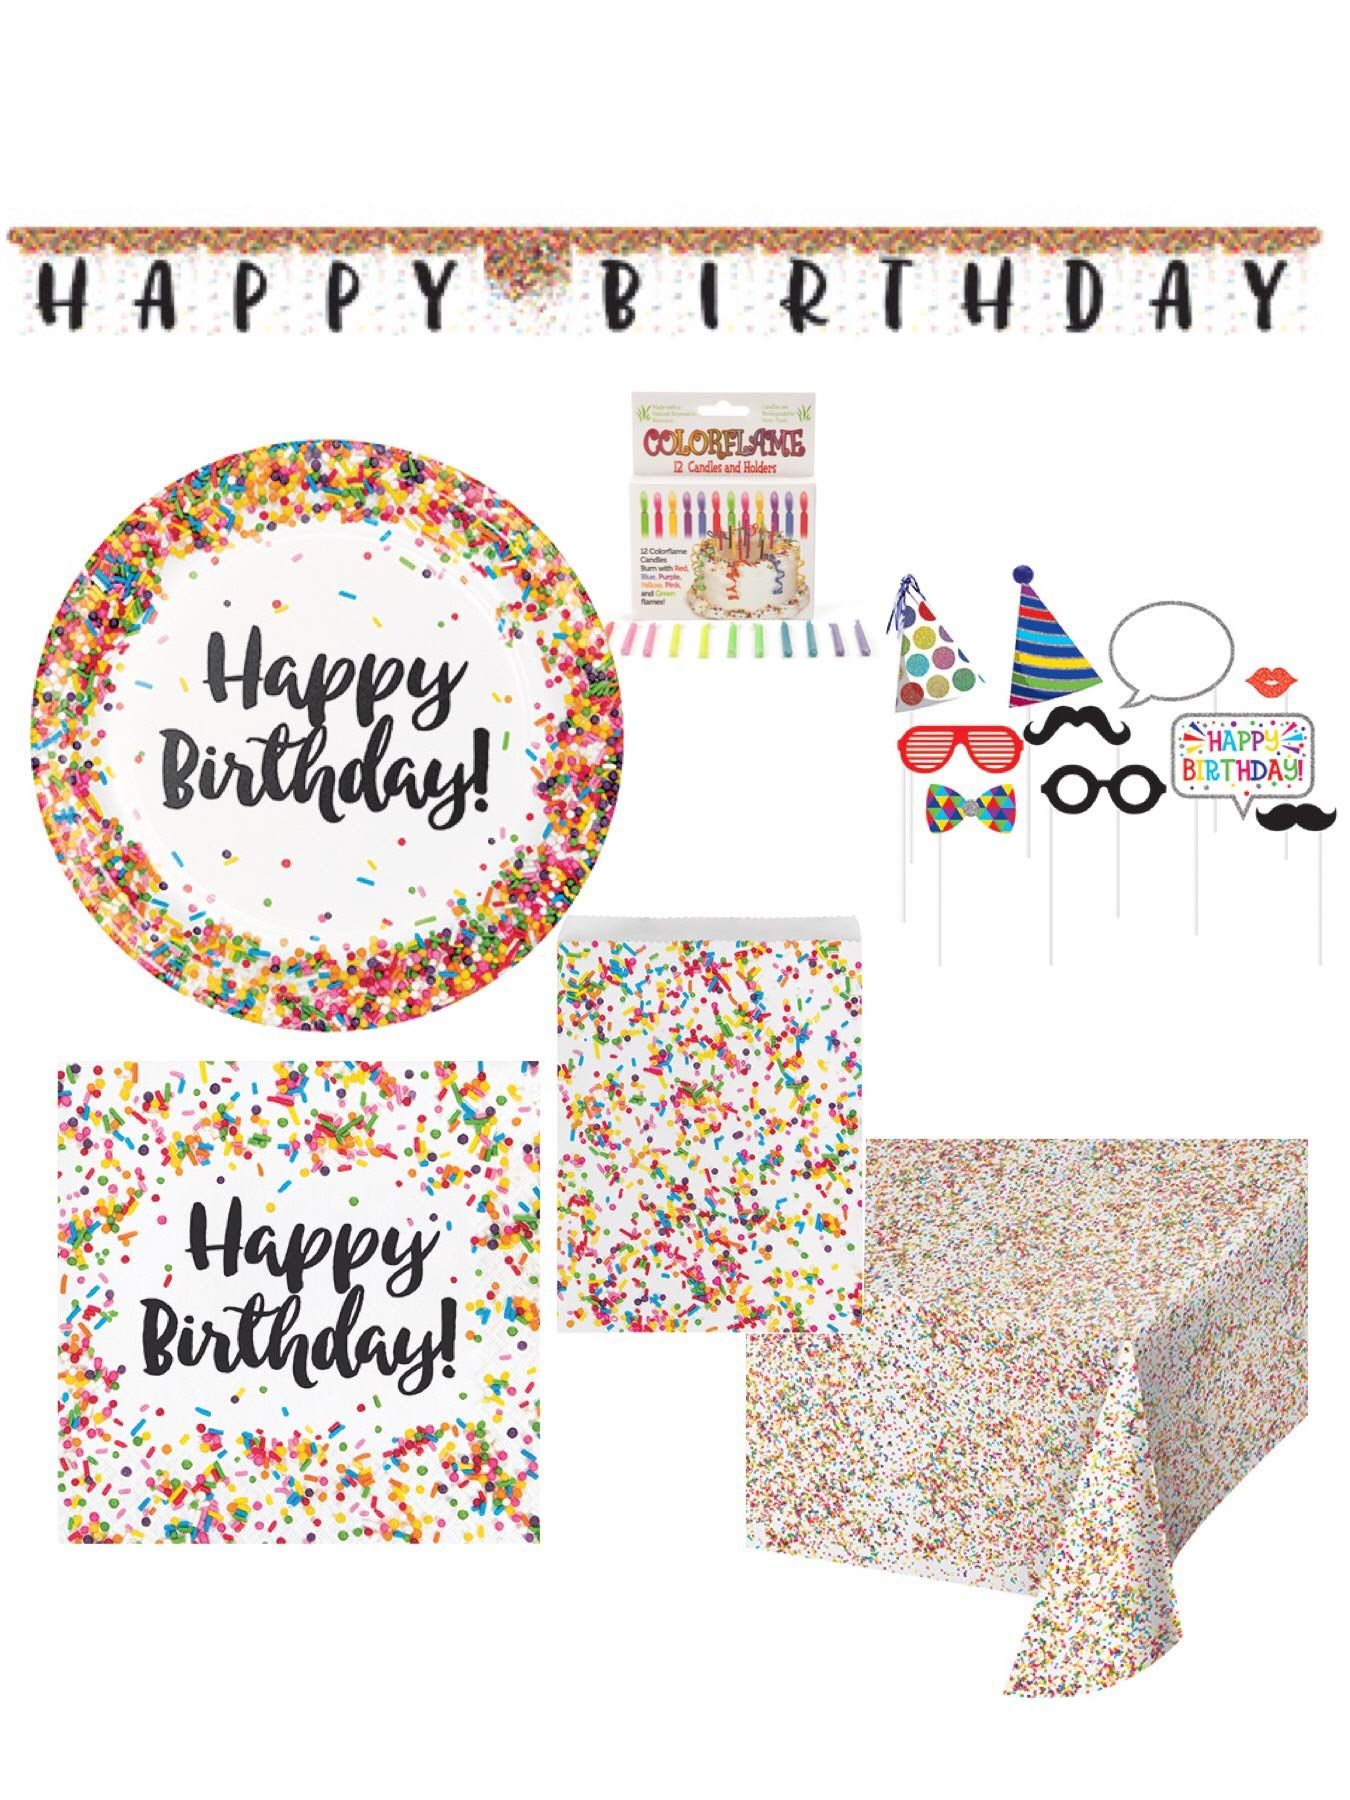 Confetti Sprinkles Happy Birthday Disposable Paper Party Supplies Serves 16: Dinner Plates + Napkins + Banner + Table Cover + Loot Bags + Photo Props + Candles + Grandma Olive's Multi-Generational Re